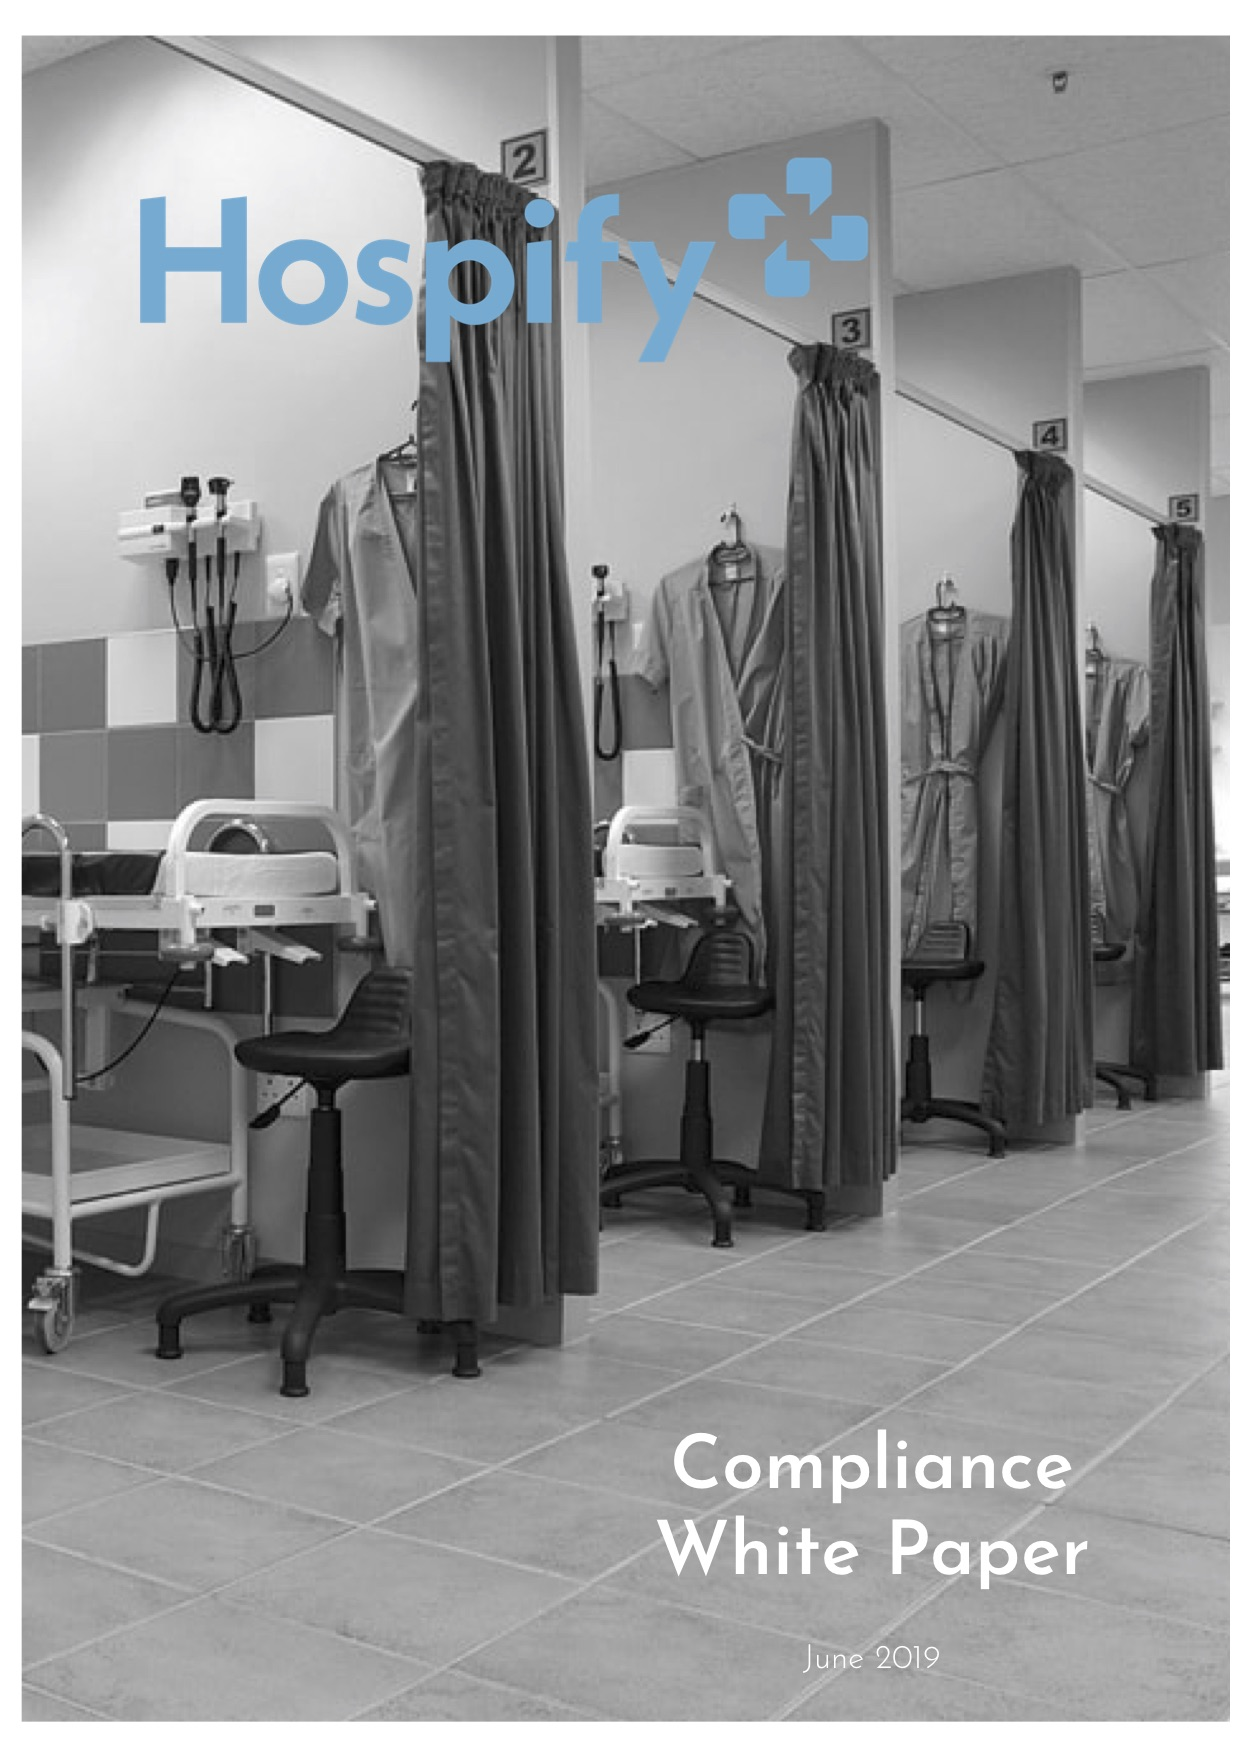 Hospify Compliance White Paper COVER.jpg